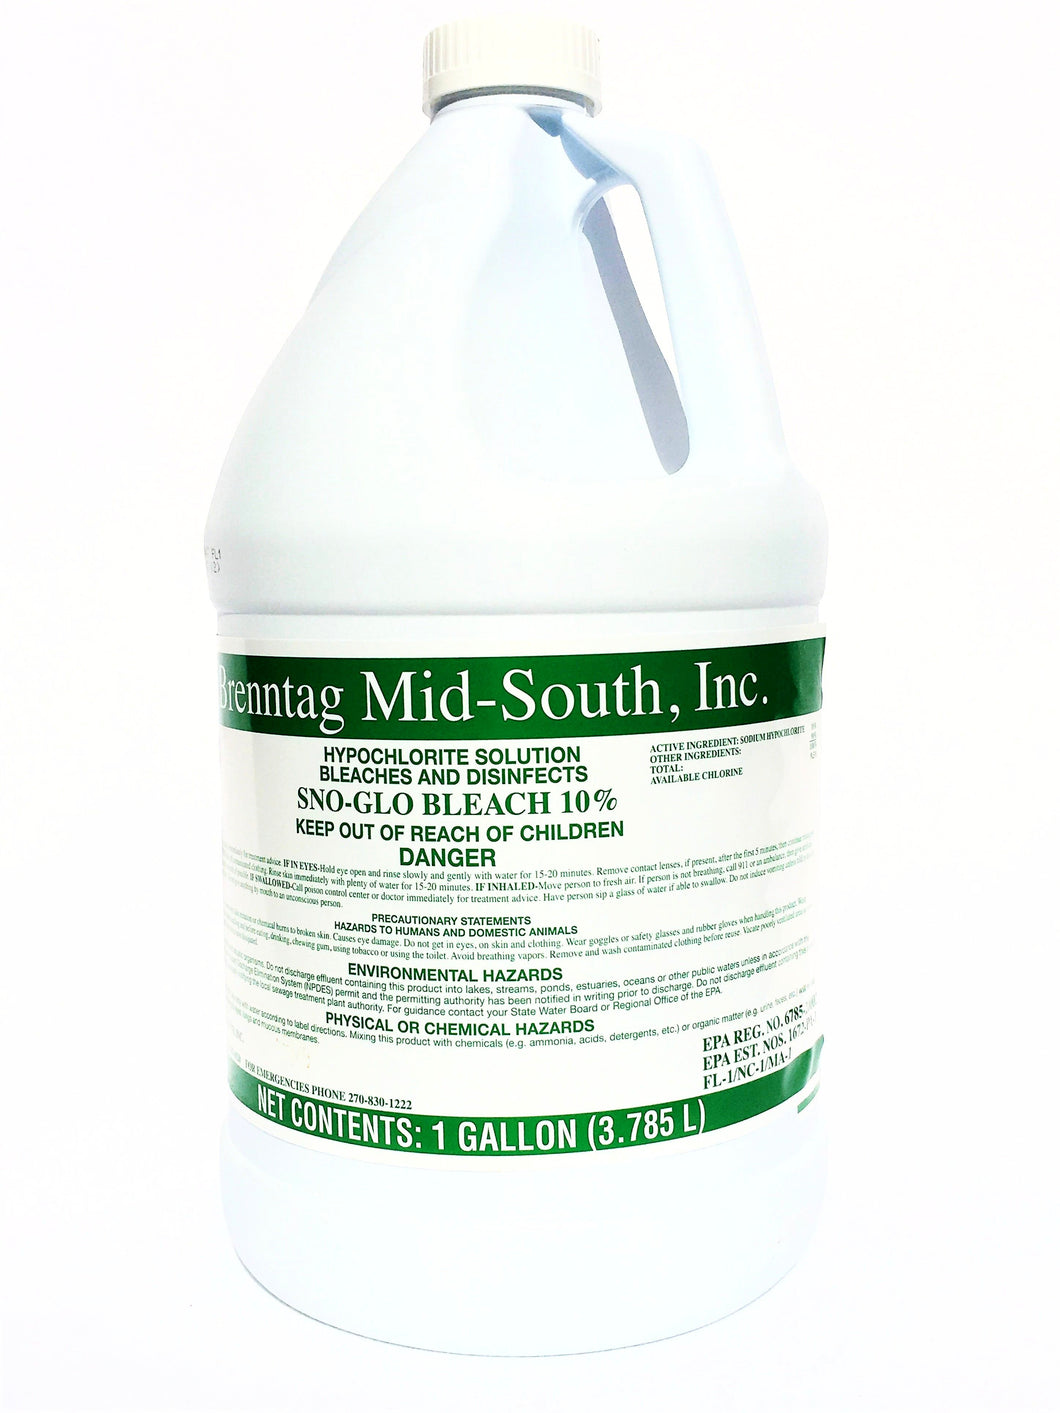 Brenntag Mid-South, Inc. Sno-Glo Bleach 10% - 1 gallon